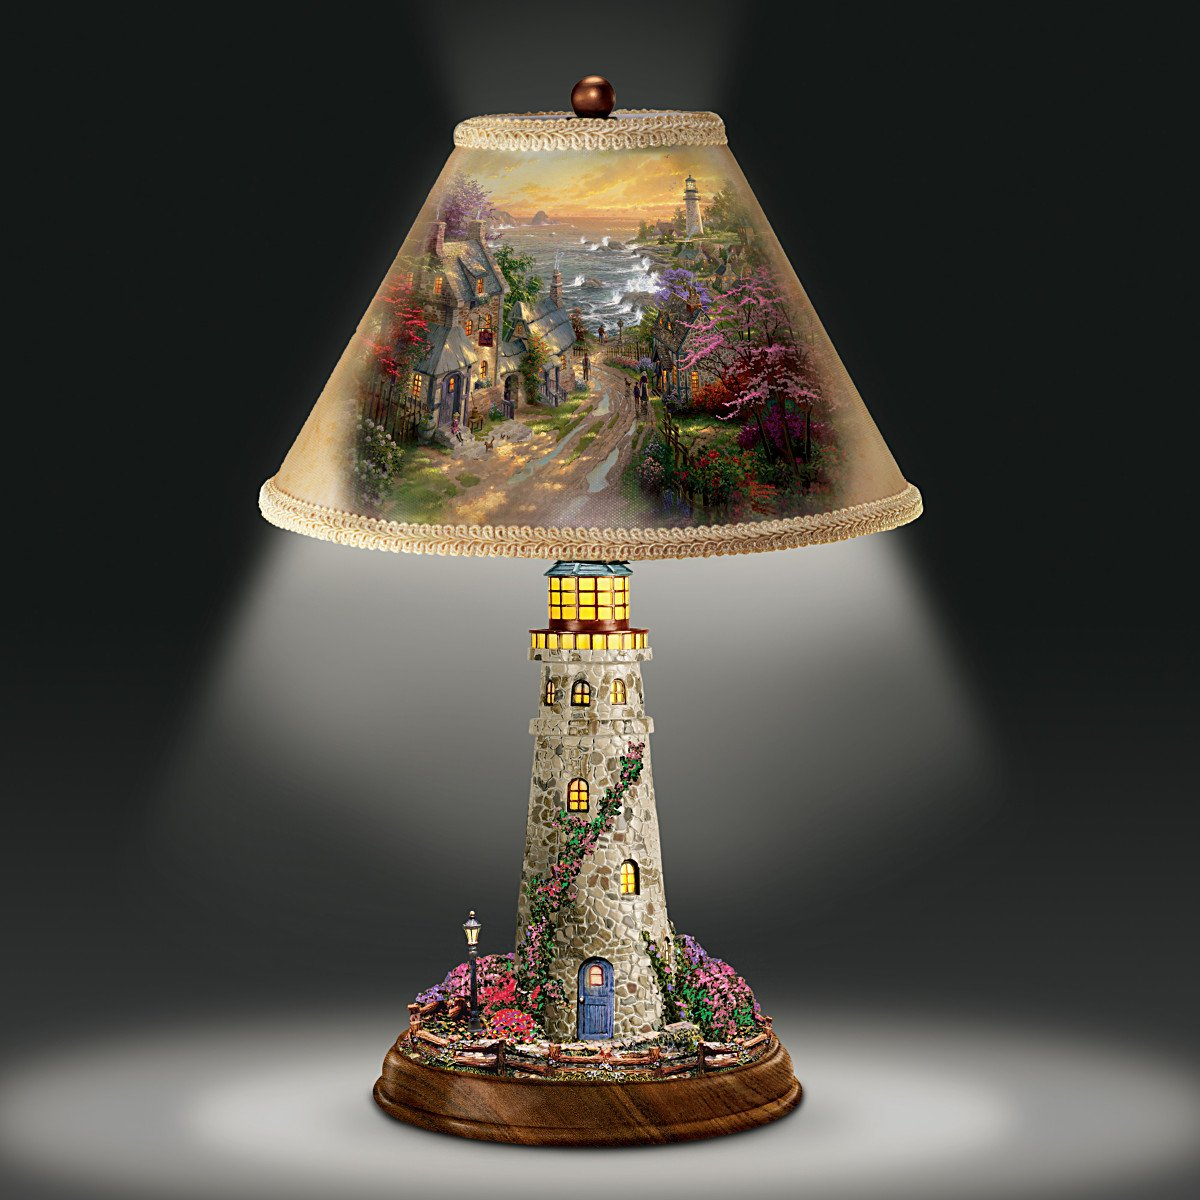 Thomas Kinkade Lamp With The Village Lighthouse Artwork On Shade And Base By Bradford Exchange